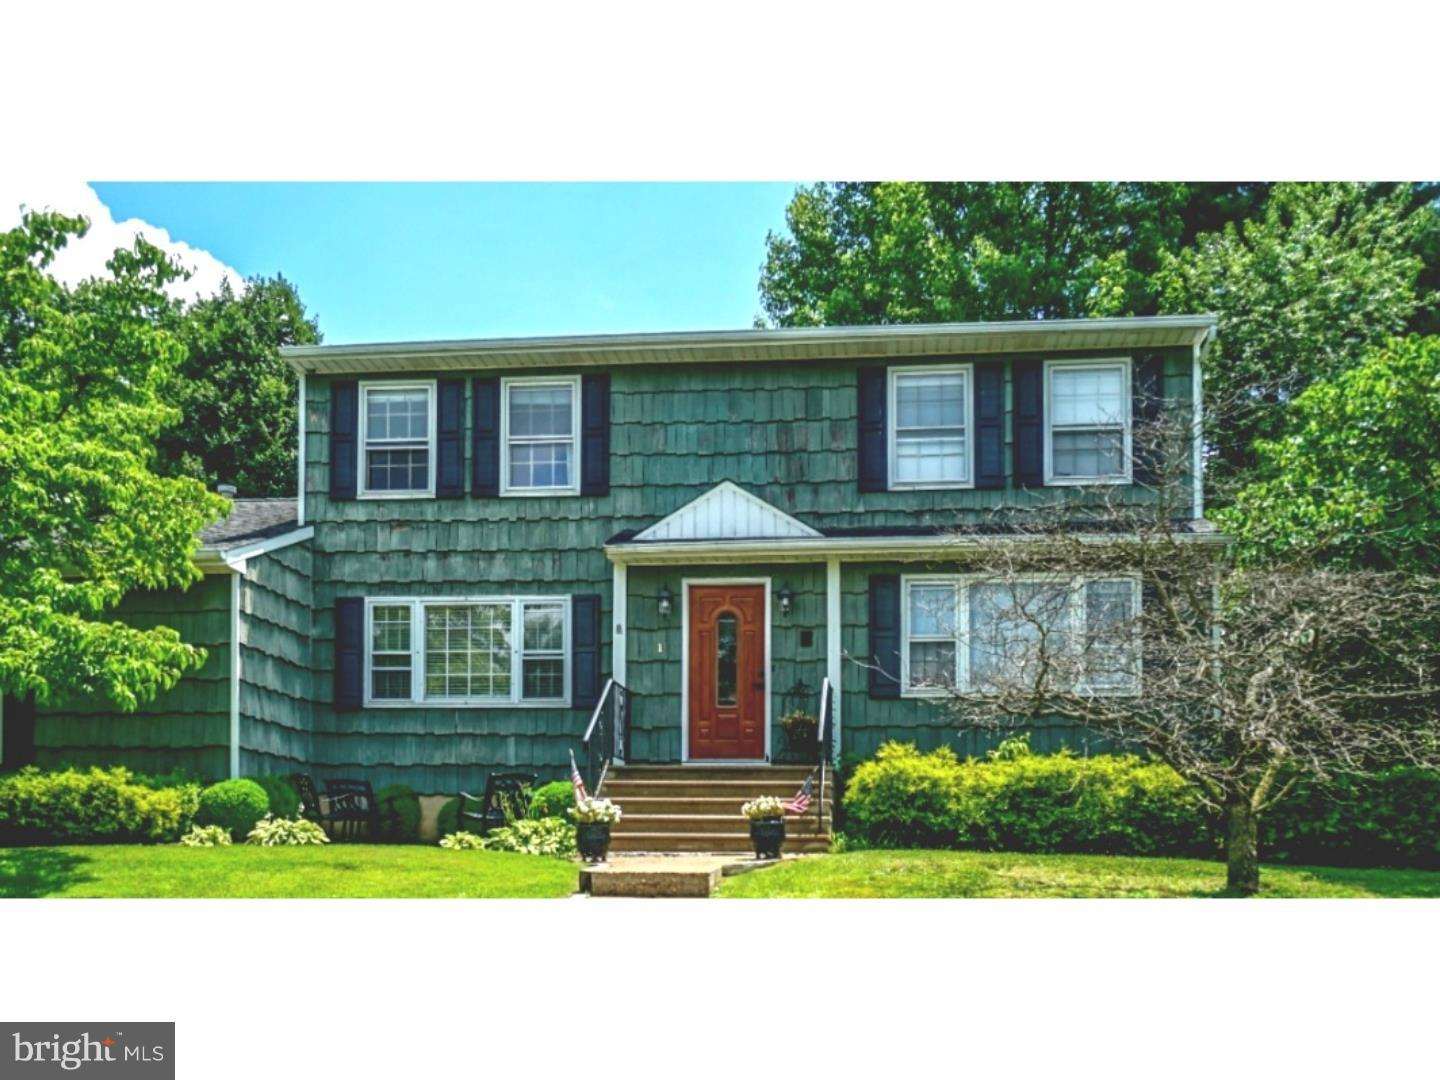 Single Family Home for Sale at 1 HERITAGE WAY Lawrenceville, New Jersey 08648 United StatesMunicipality: Lawrence Township